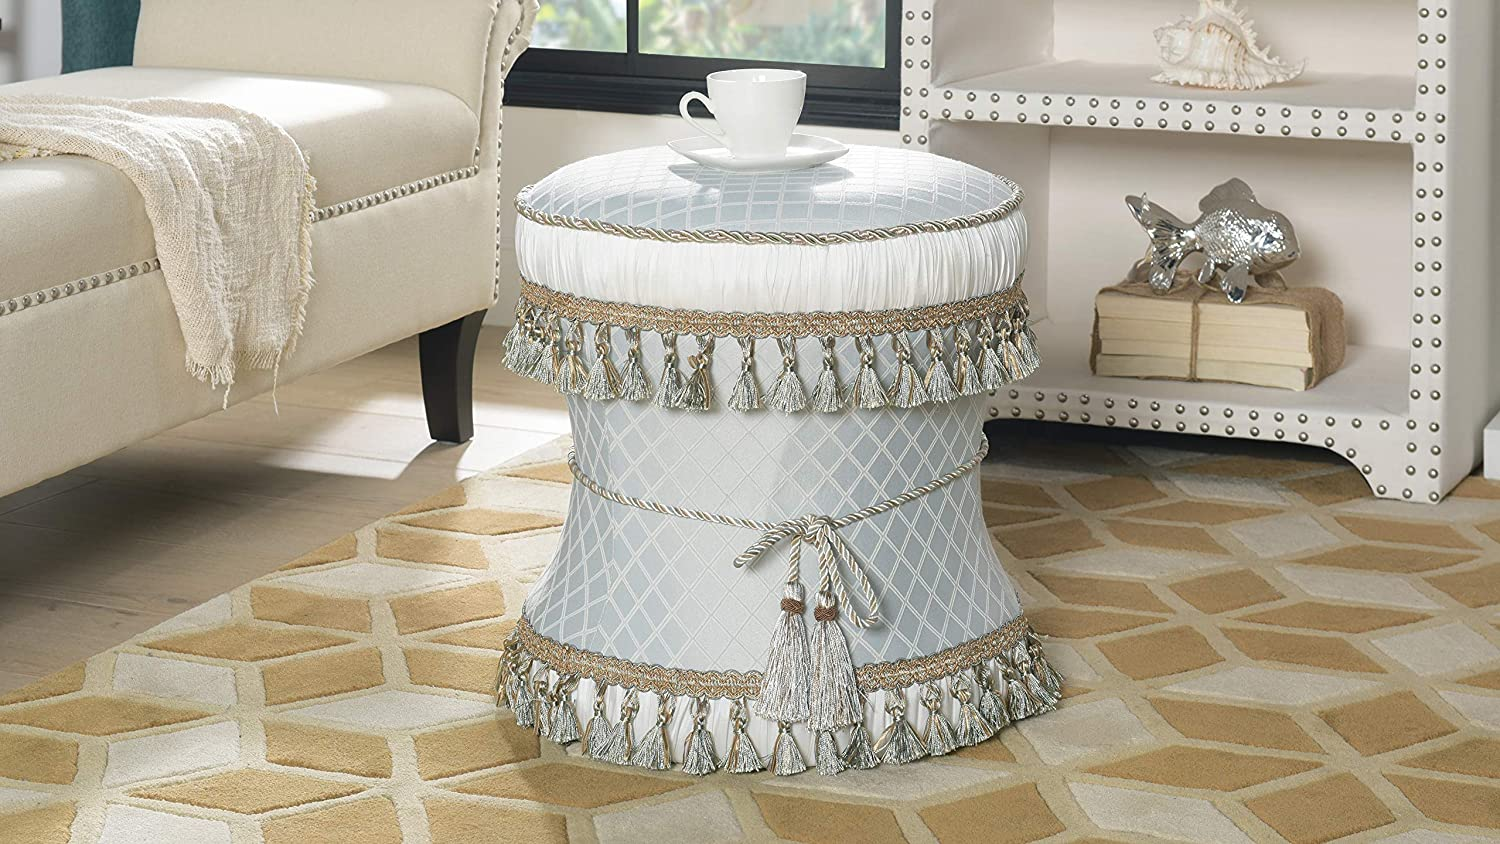 Tremendous Jennifer Taylor Home Vanity Stool Seamist Blue Bow Tassels Cord W Fringe Trim Tassels Caraccident5 Cool Chair Designs And Ideas Caraccident5Info